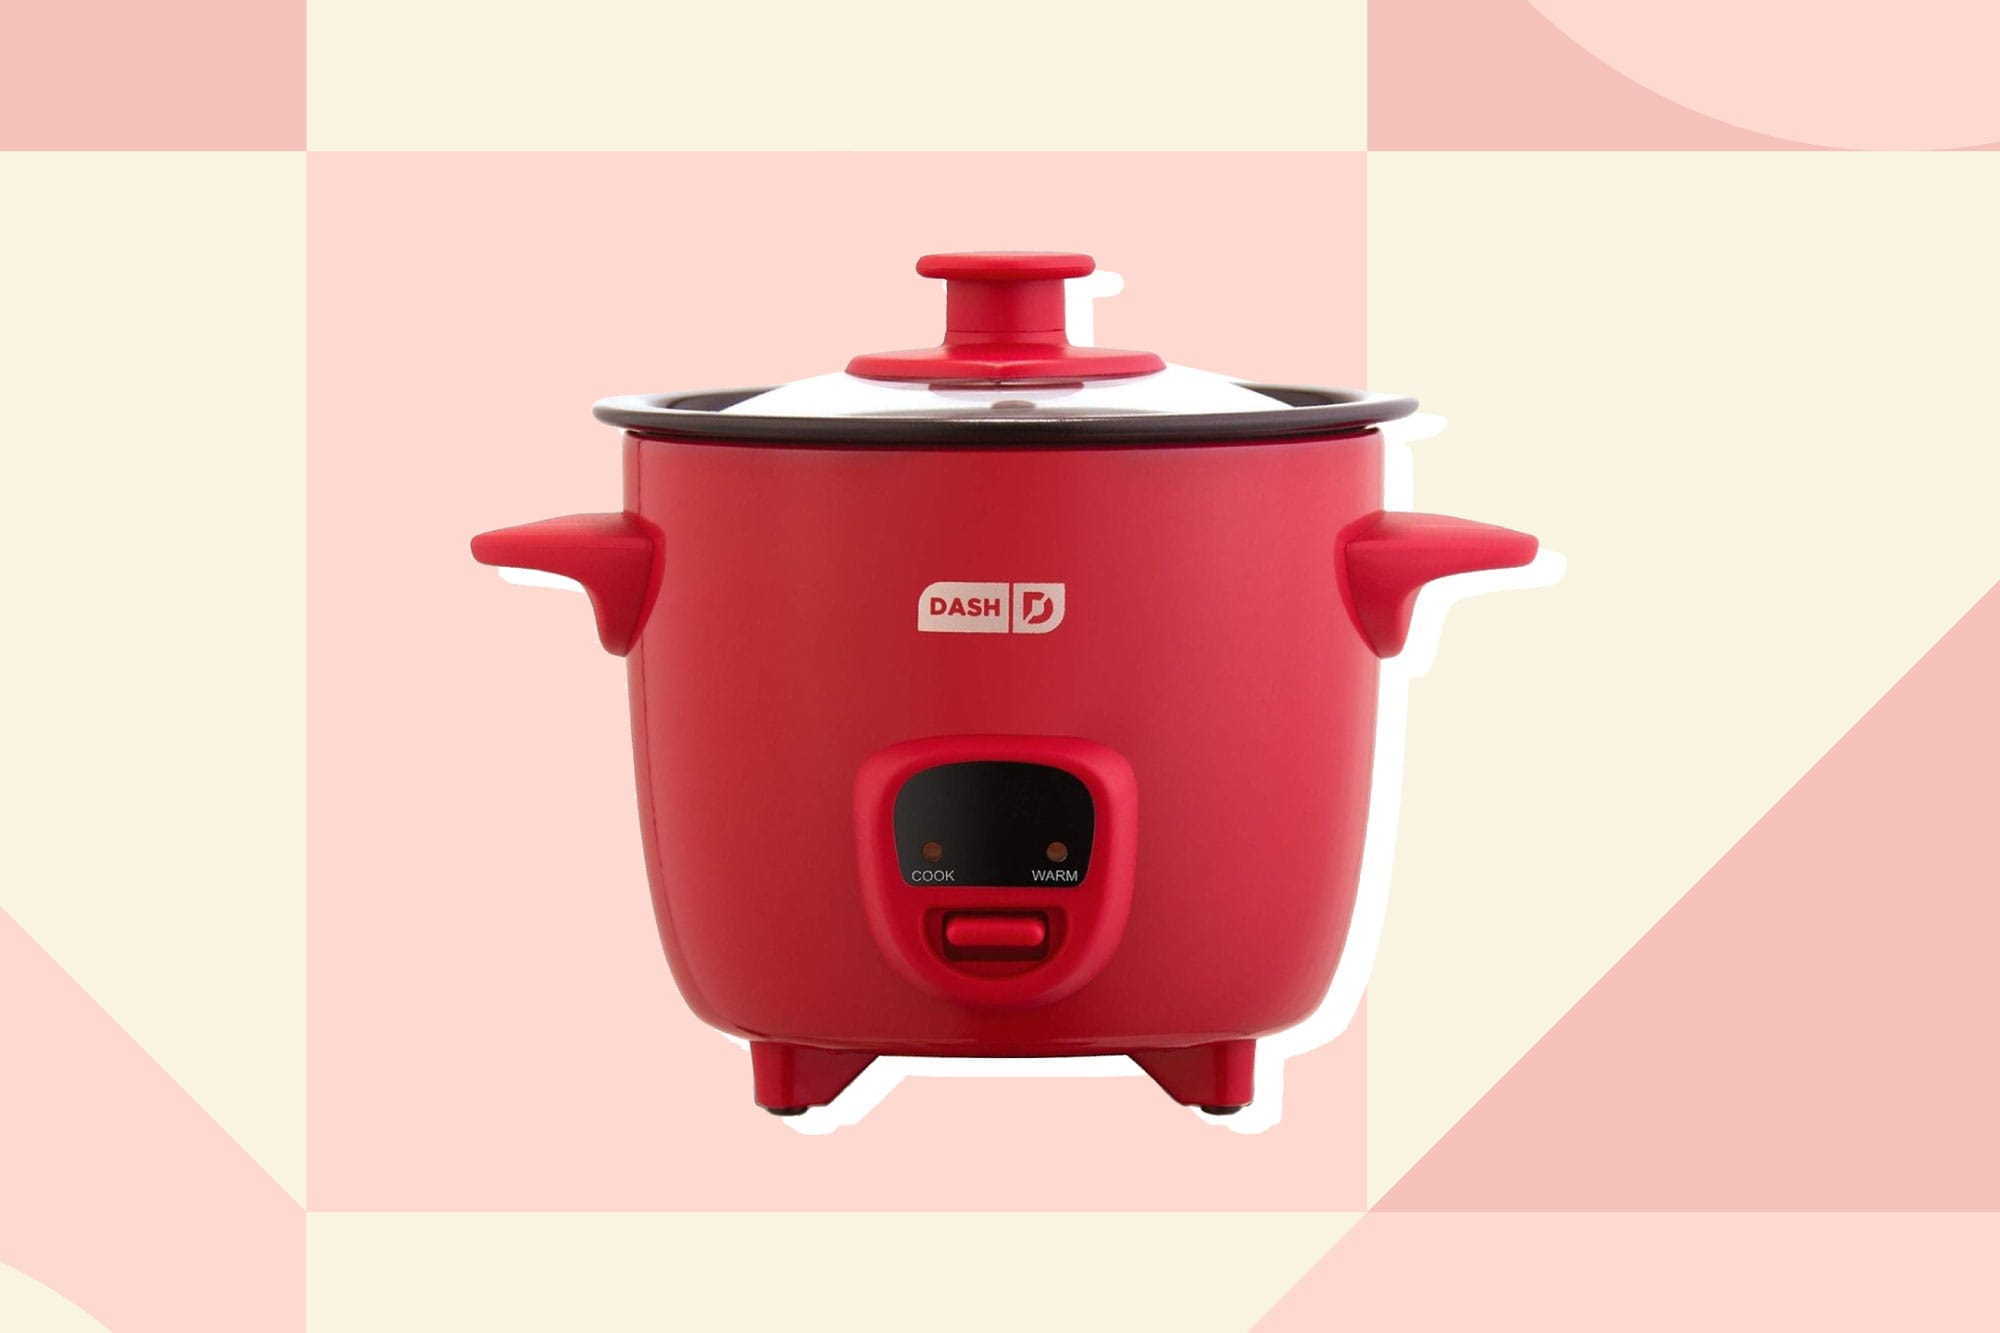 Psst! You Can Score a Dash Air Fryer and Rice Cooker for 20% Off — But Only for a Limited Time